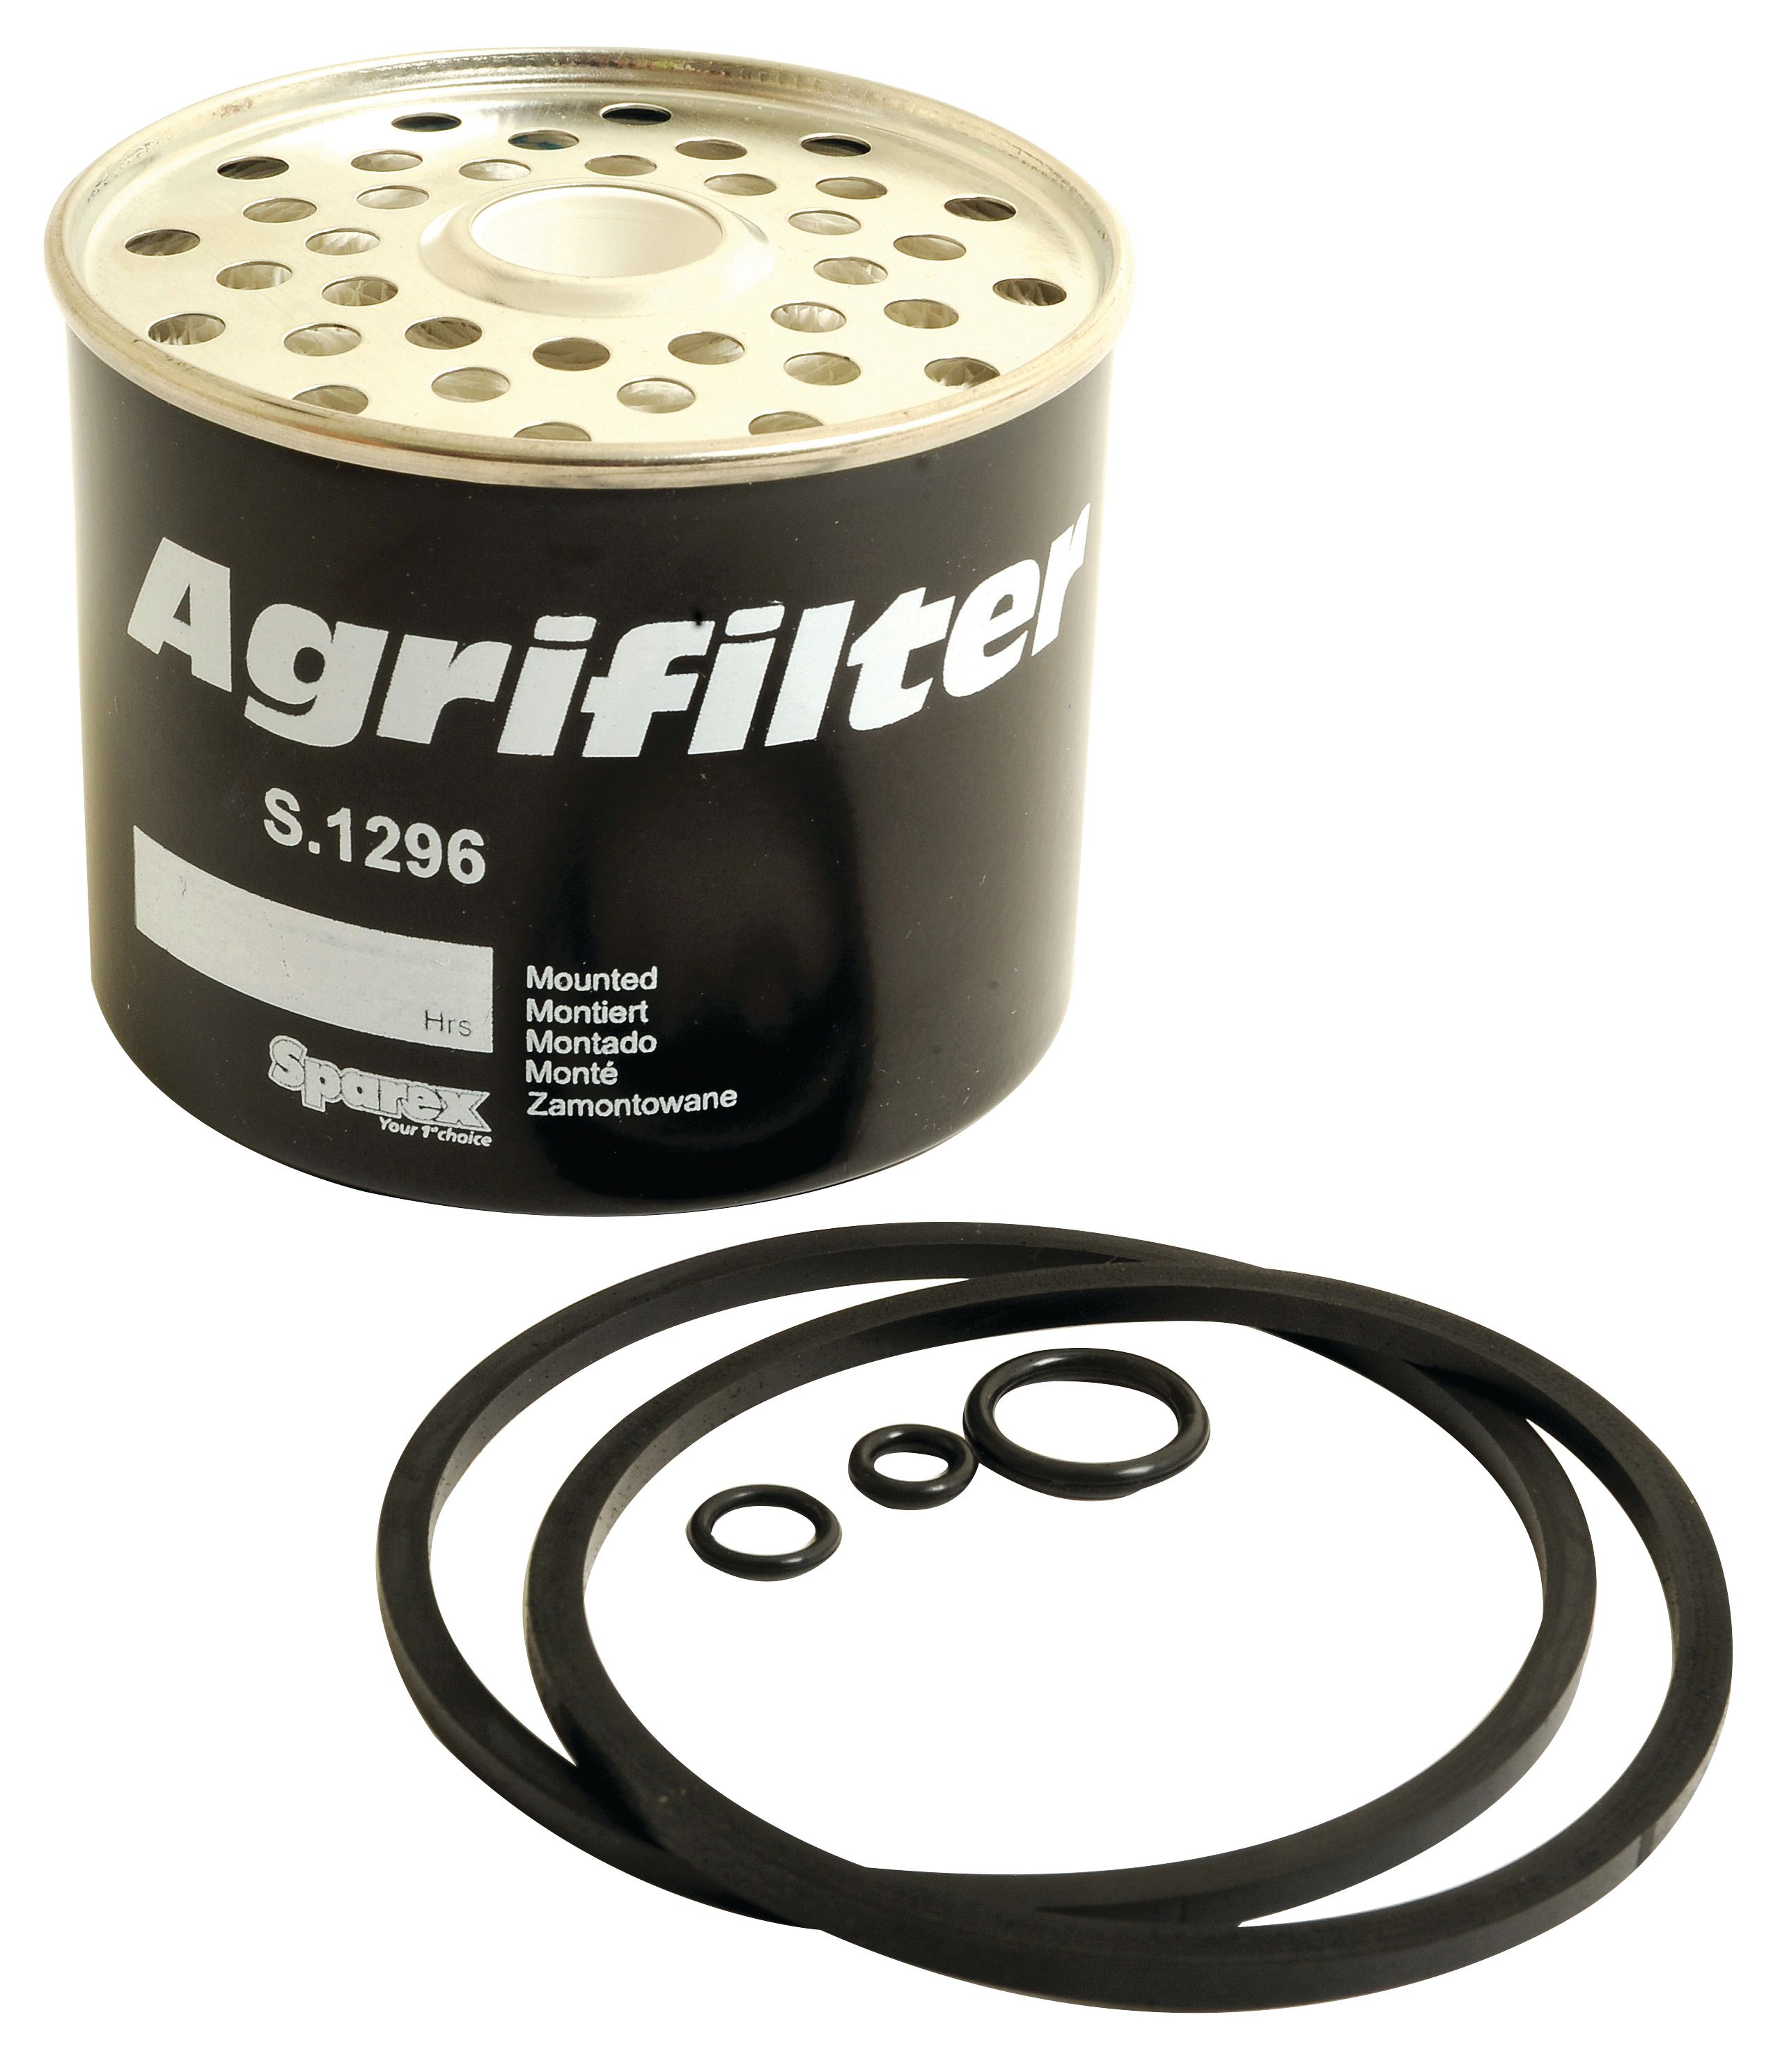 LAND ROVER FUEL FILTER 1296